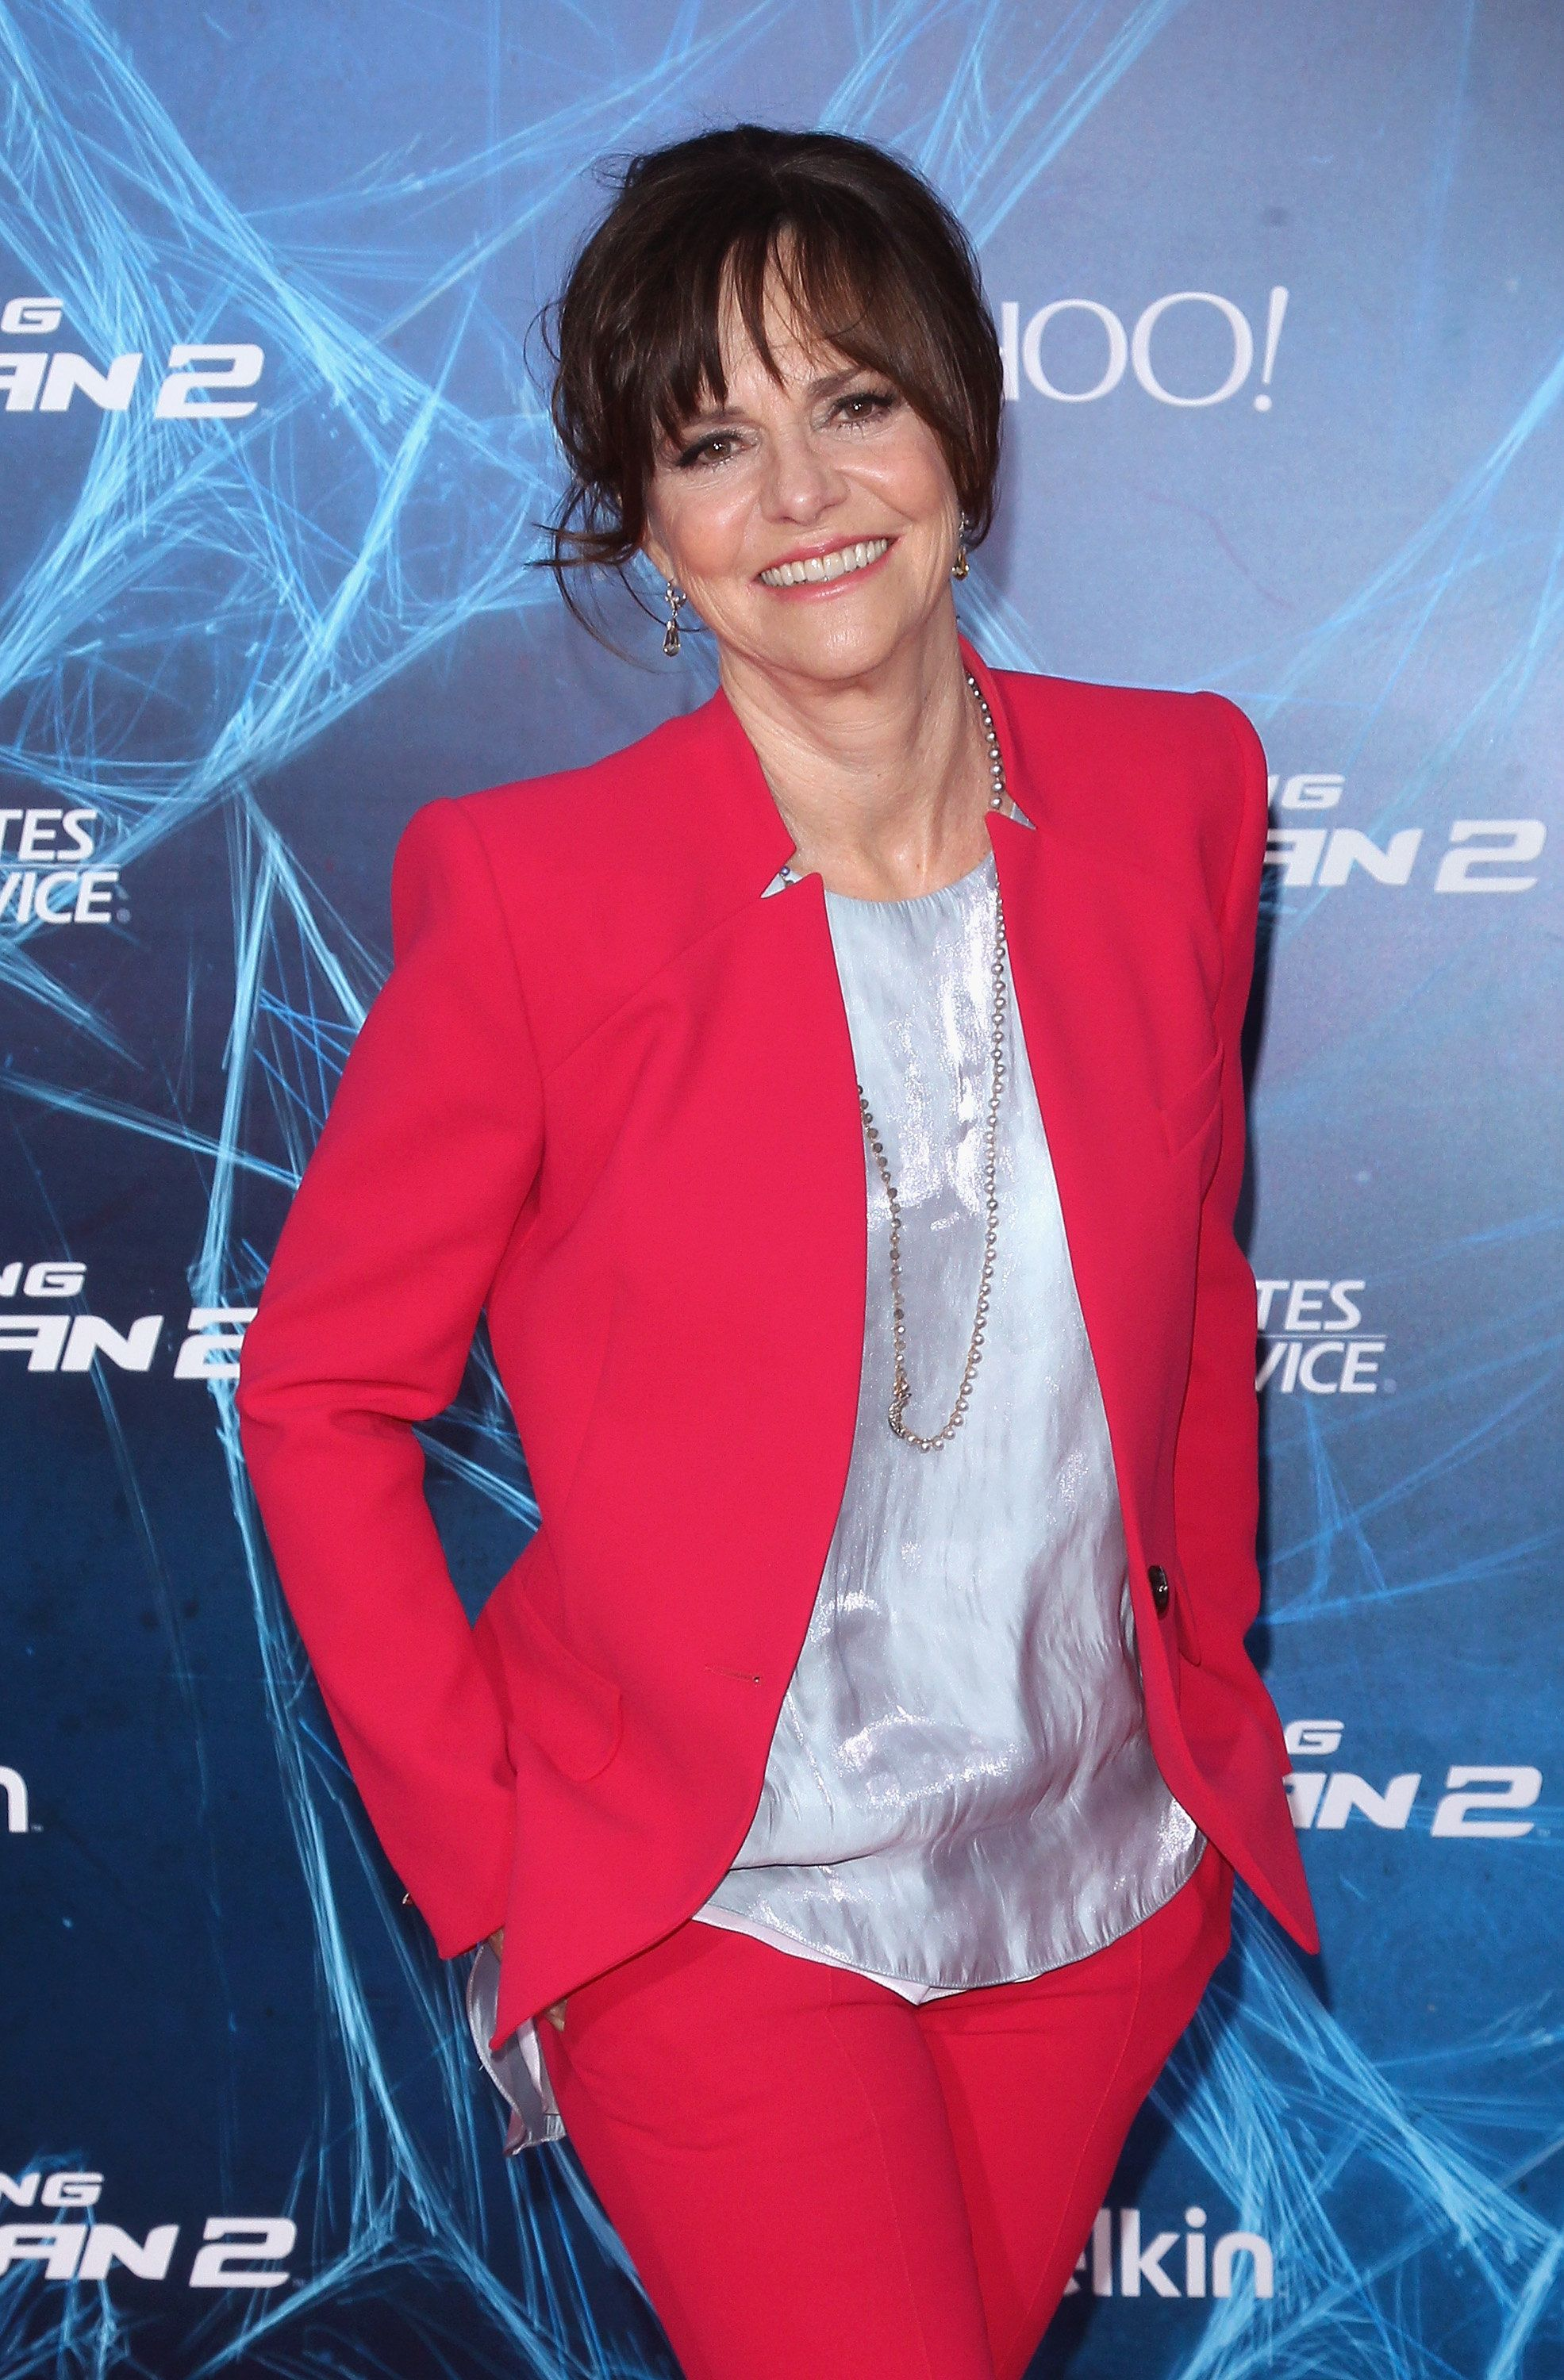 NEW YORK, NY - APRIL 24:  Actress Sally Field attends the 'The Amazing Spider-Man 2' New York Premiere on April 24, 2014 in New York City.  (Photo by Jim Spellman/WireImage)